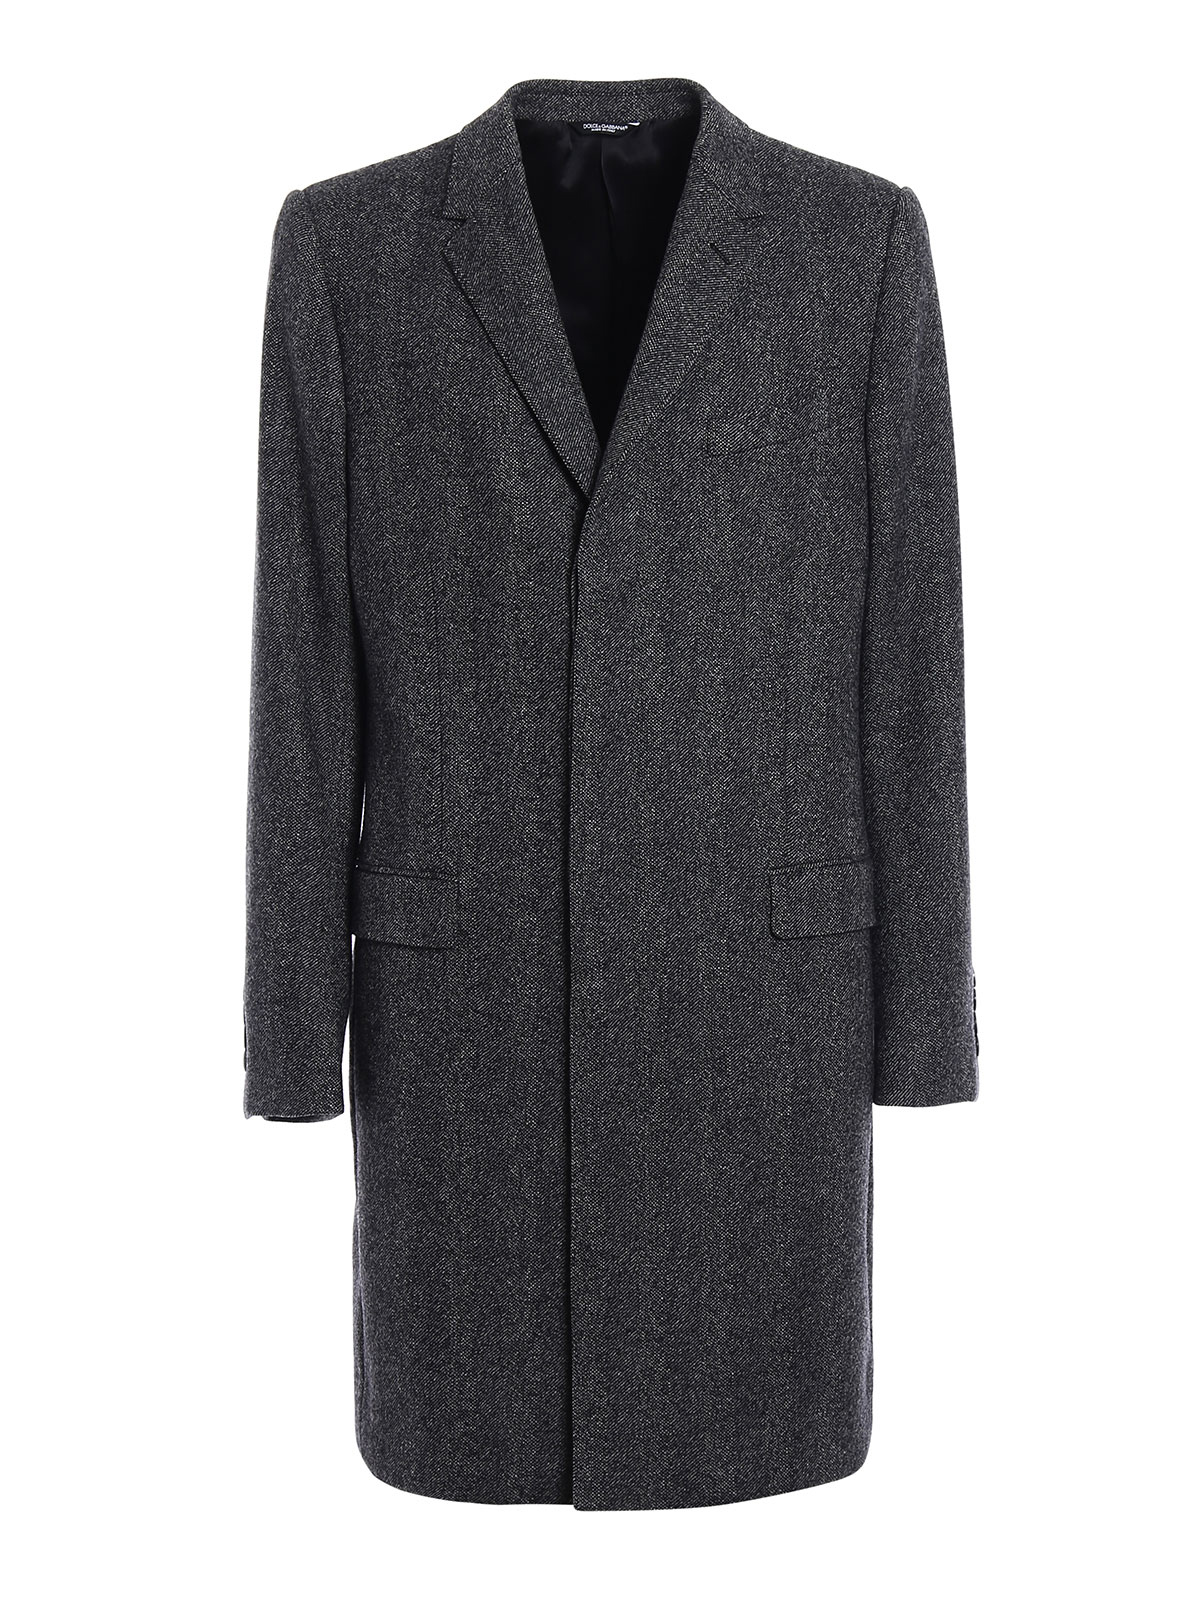 Wool cashmere blend tweed coat by Dolce & Gabbana